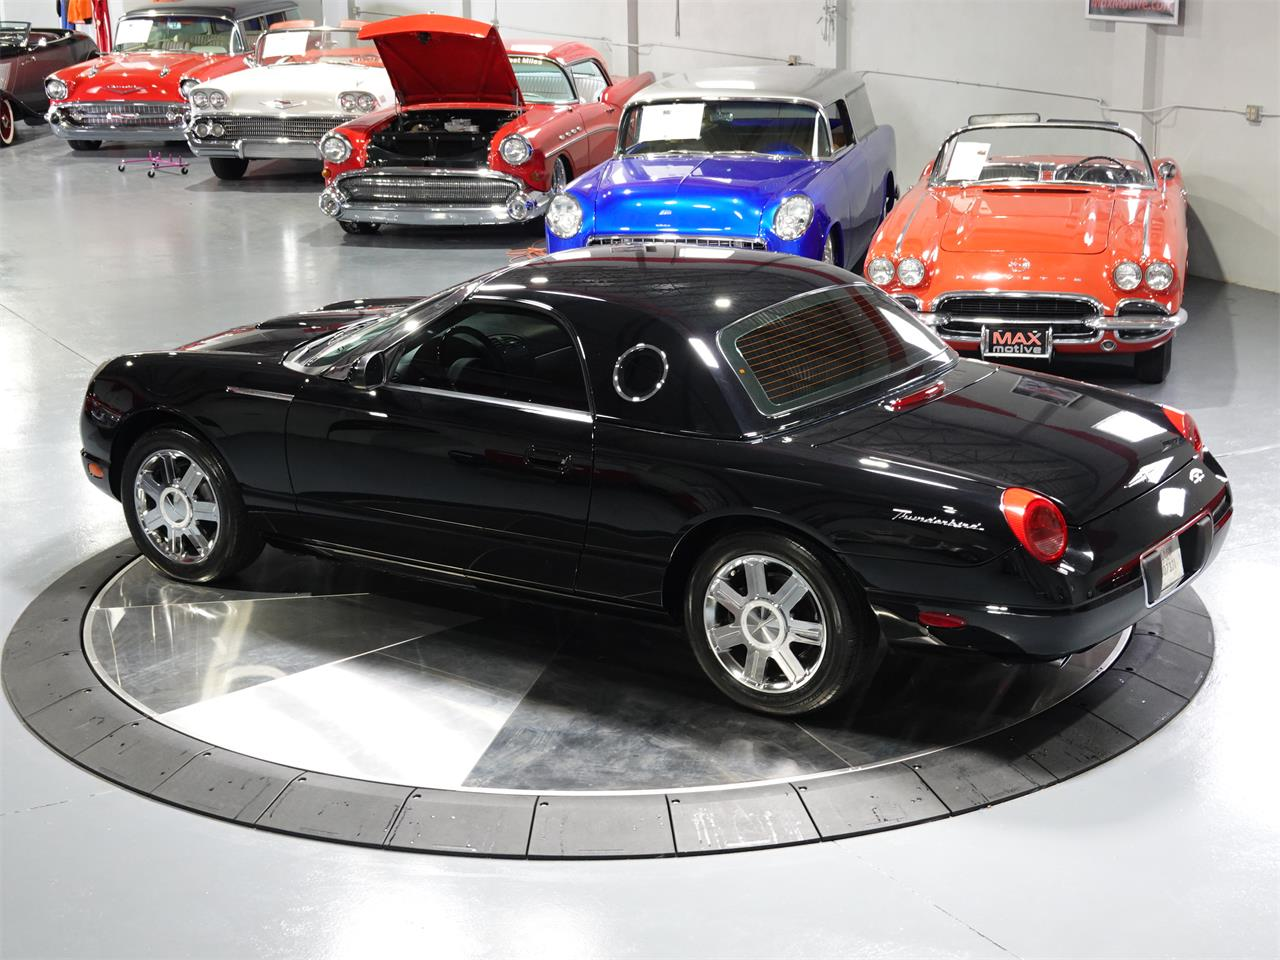 2005 Ford Thunderbird (CC-1306020) for sale in Pittsburgh, Pennsylvania